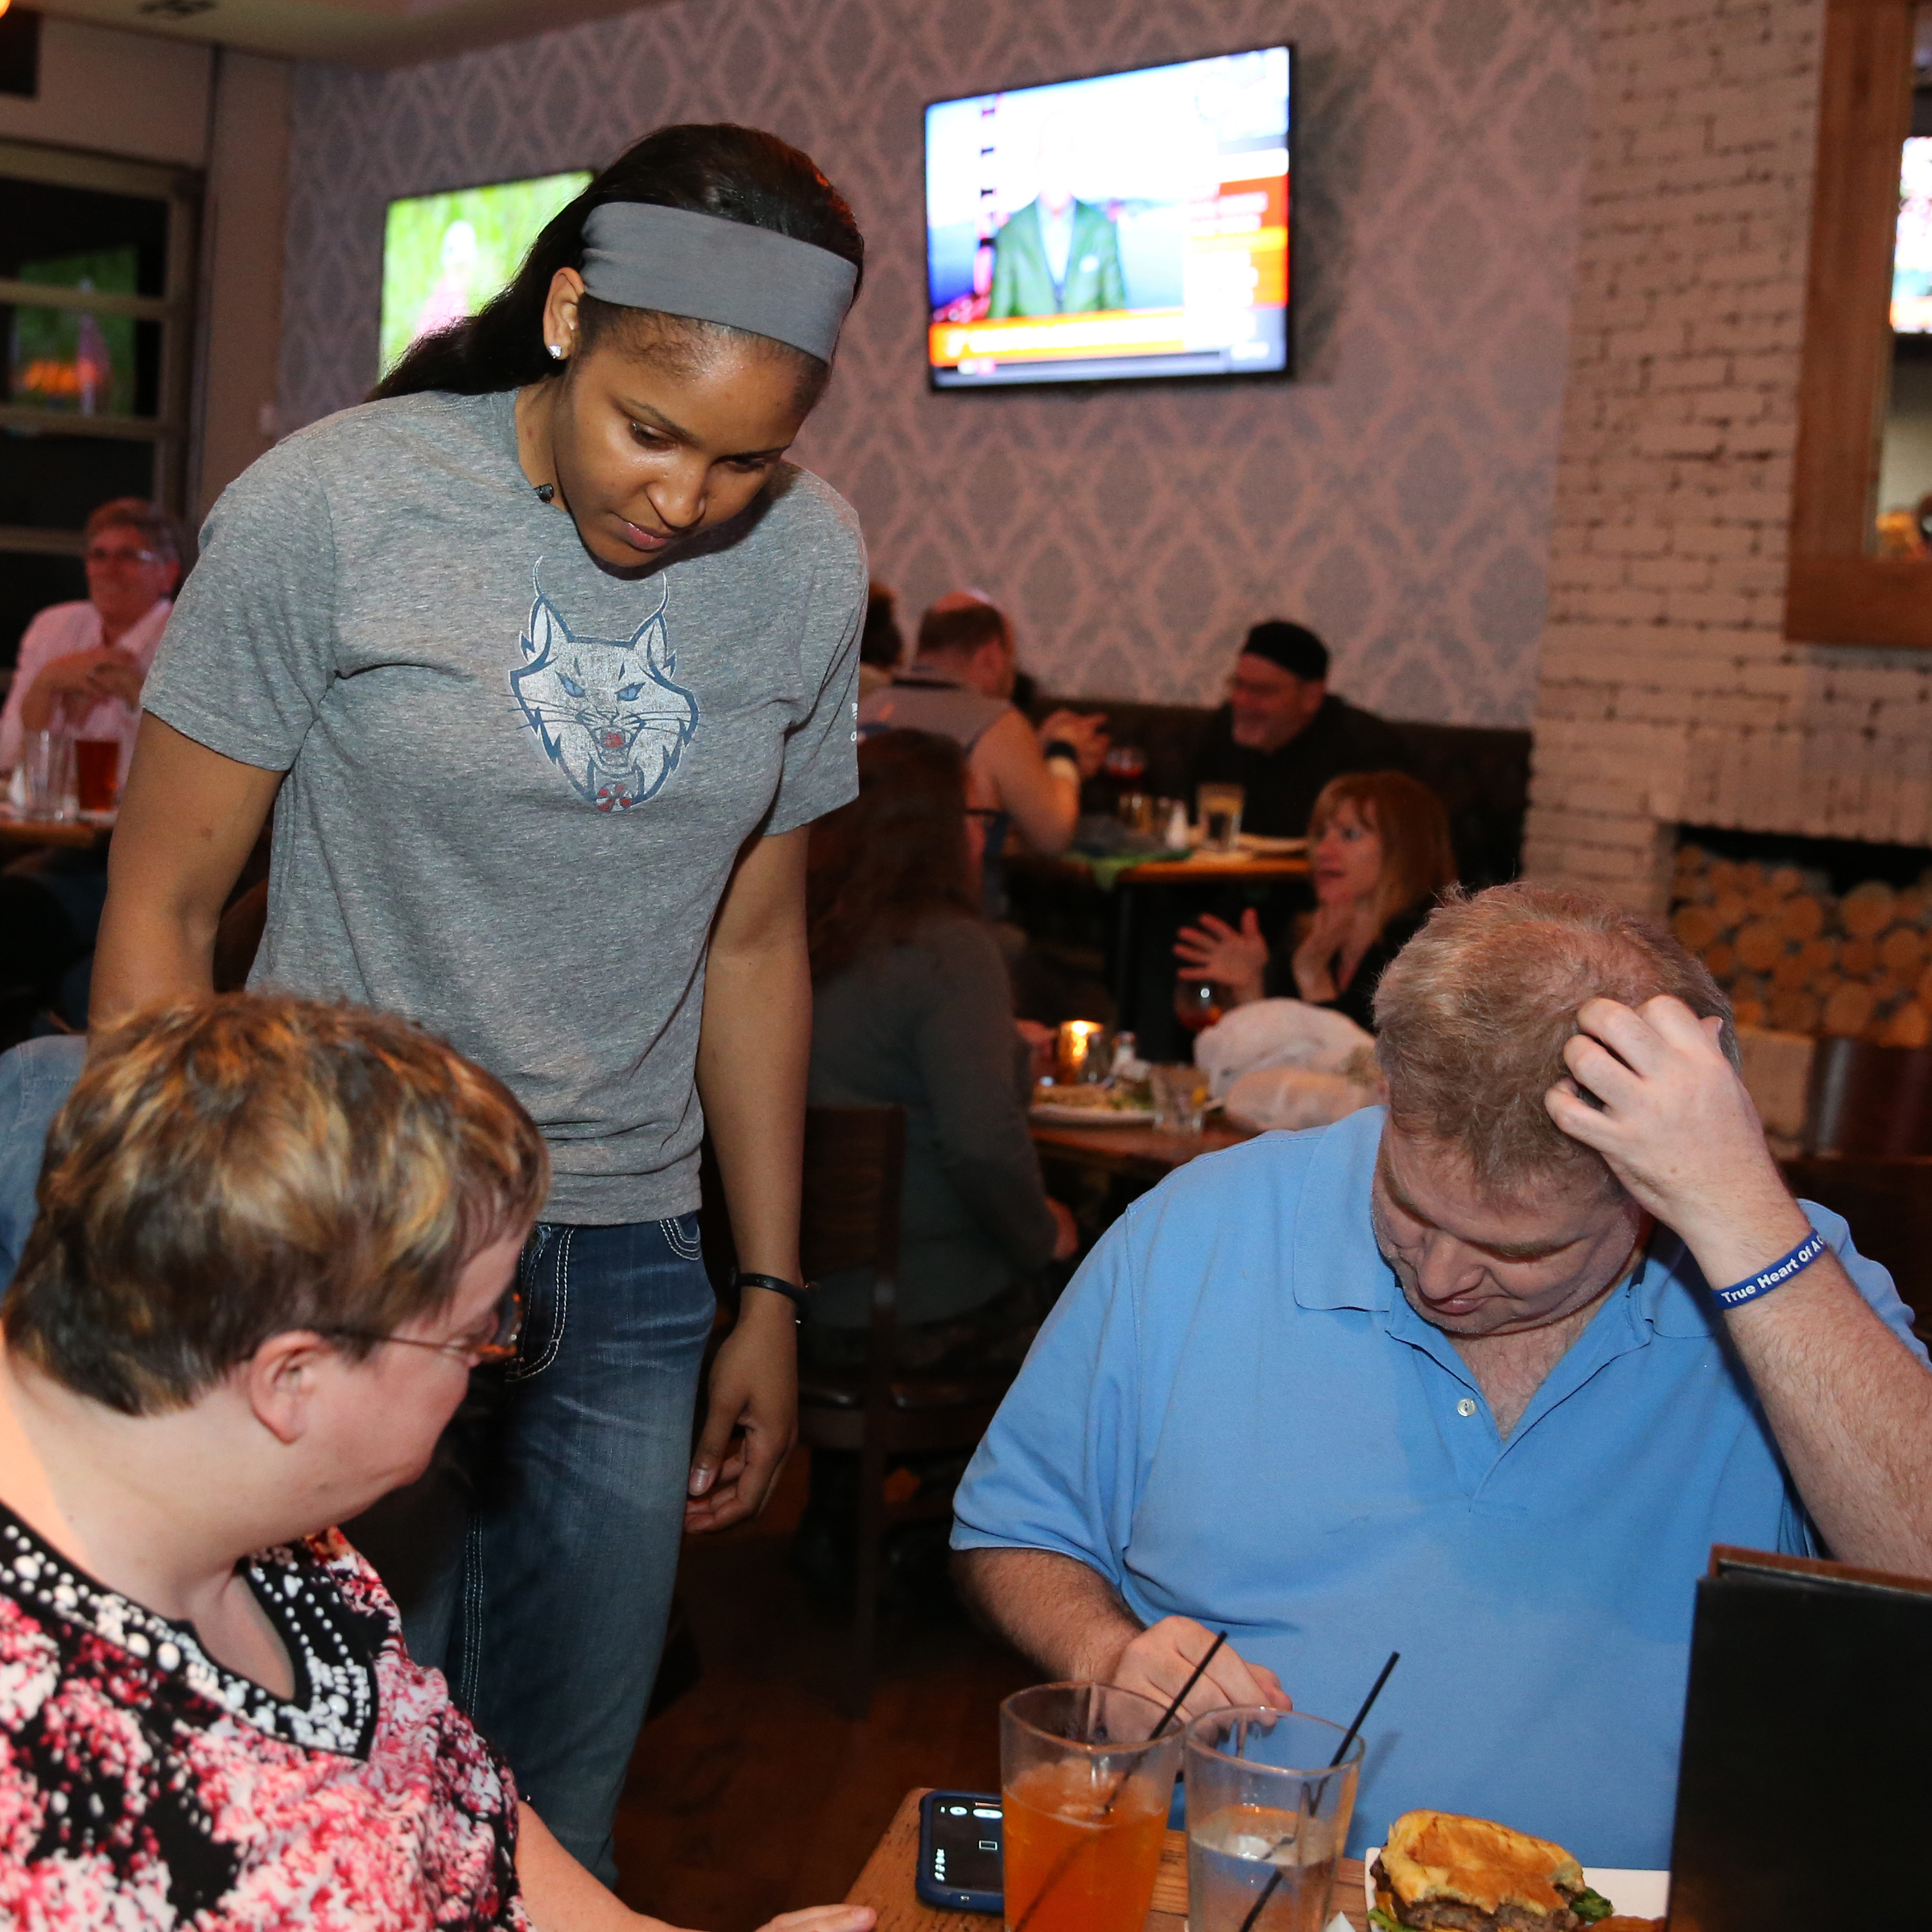 MINNEAPOLIS, MN - JUNE 3:  Maya Moore #23 of the Minnesota Lynx takes orders during the Tip-A-Lynx fundraiser to benefit the Minnesota Lynx Fastbreak Foundation on June 3, 2015 at the Loop West End Bar & Restaurant in Minneapolis, Minnesota.  NOTE TO USER: User expressly acknowledges and agrees that, by downloading and or using this Photograph, user is consenting to the terms and conditions of the Getty Images License Agreement. Mandatory Copyright Notice: Copyright 2015 NBAE (Photo by David Sherman/NBAE via Getty Images)